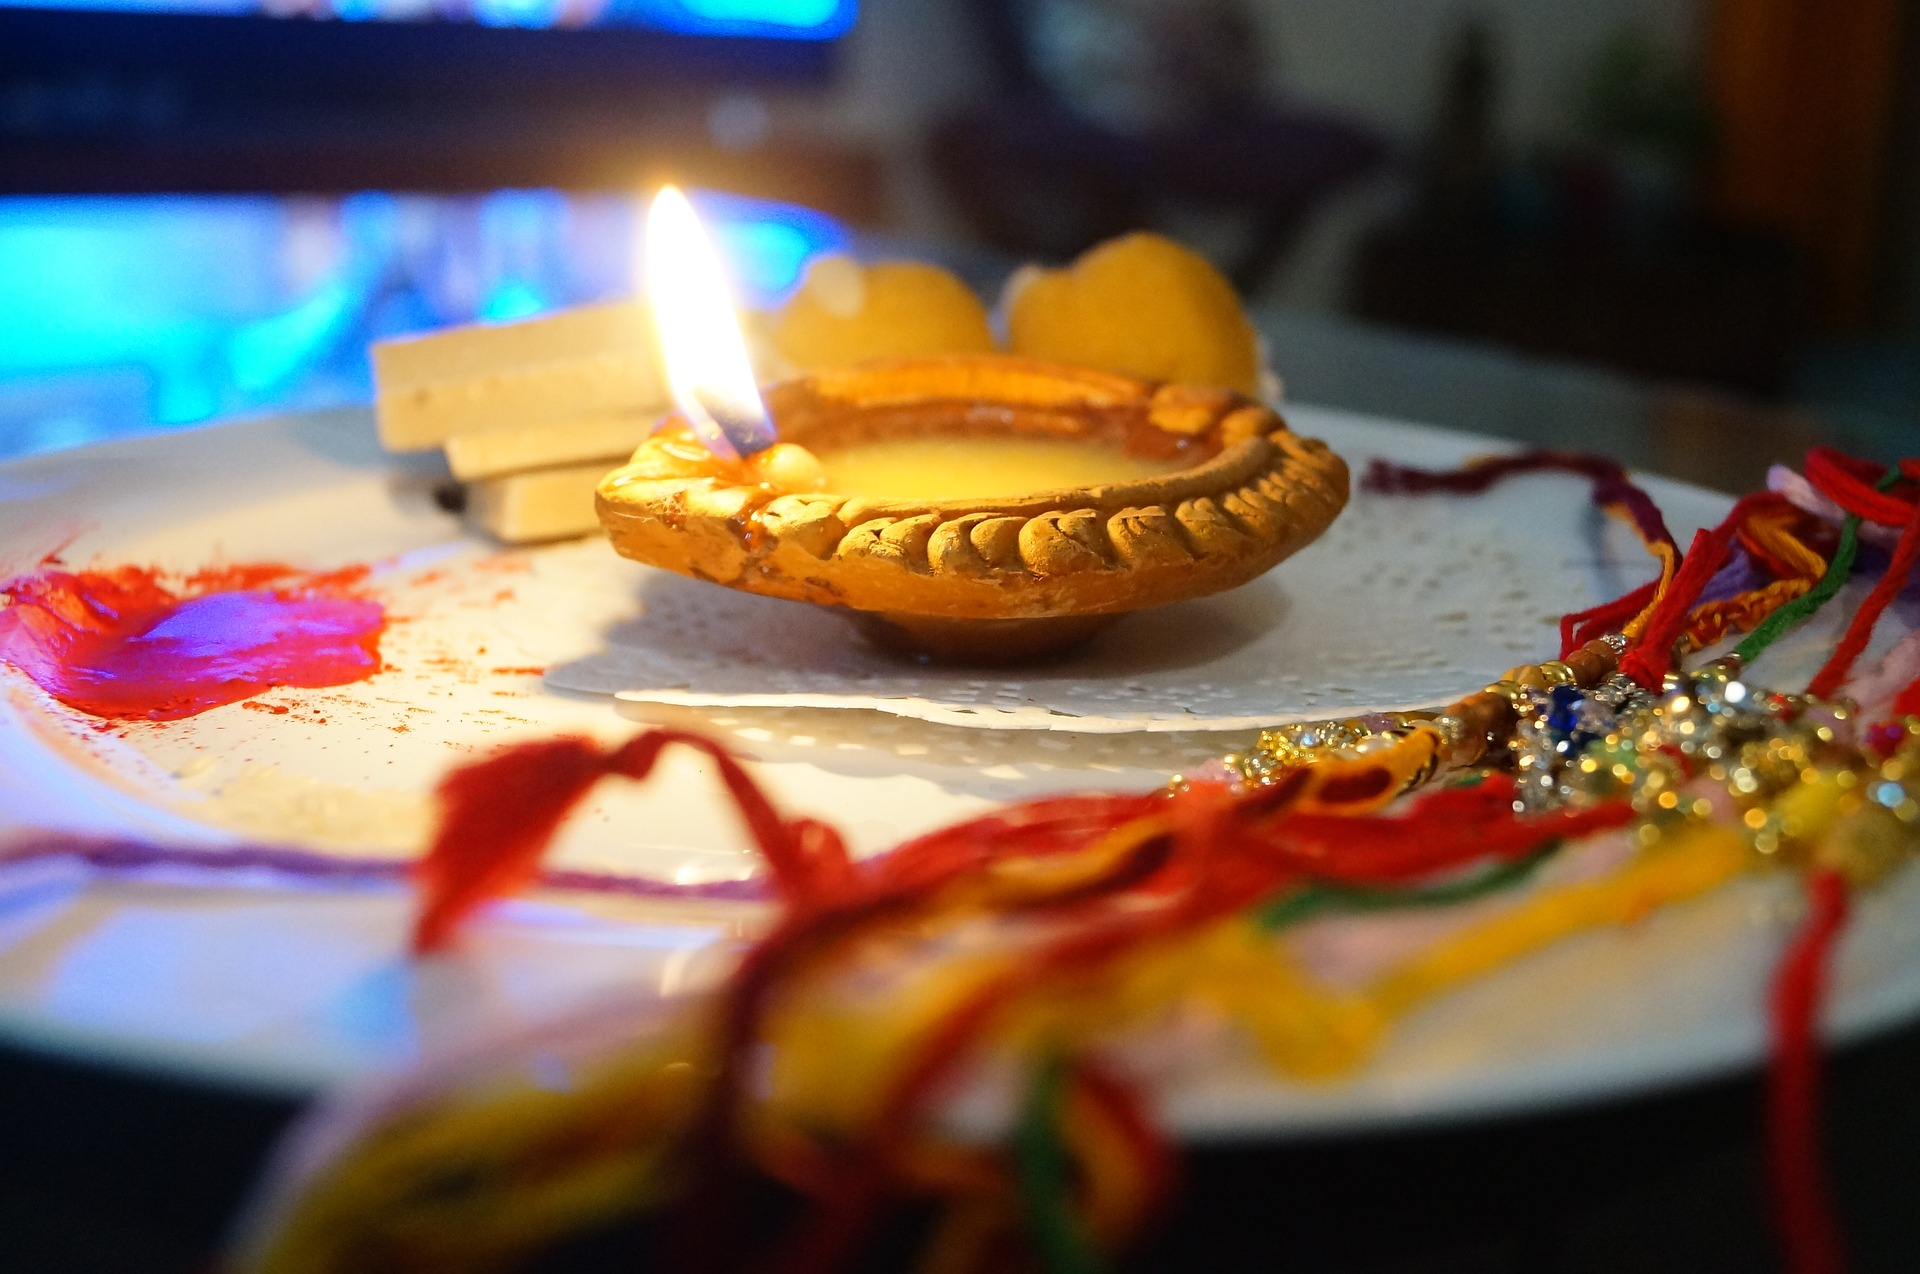 Top 5 Rakhi Gift Ideas Idyllic to Decorate the Home